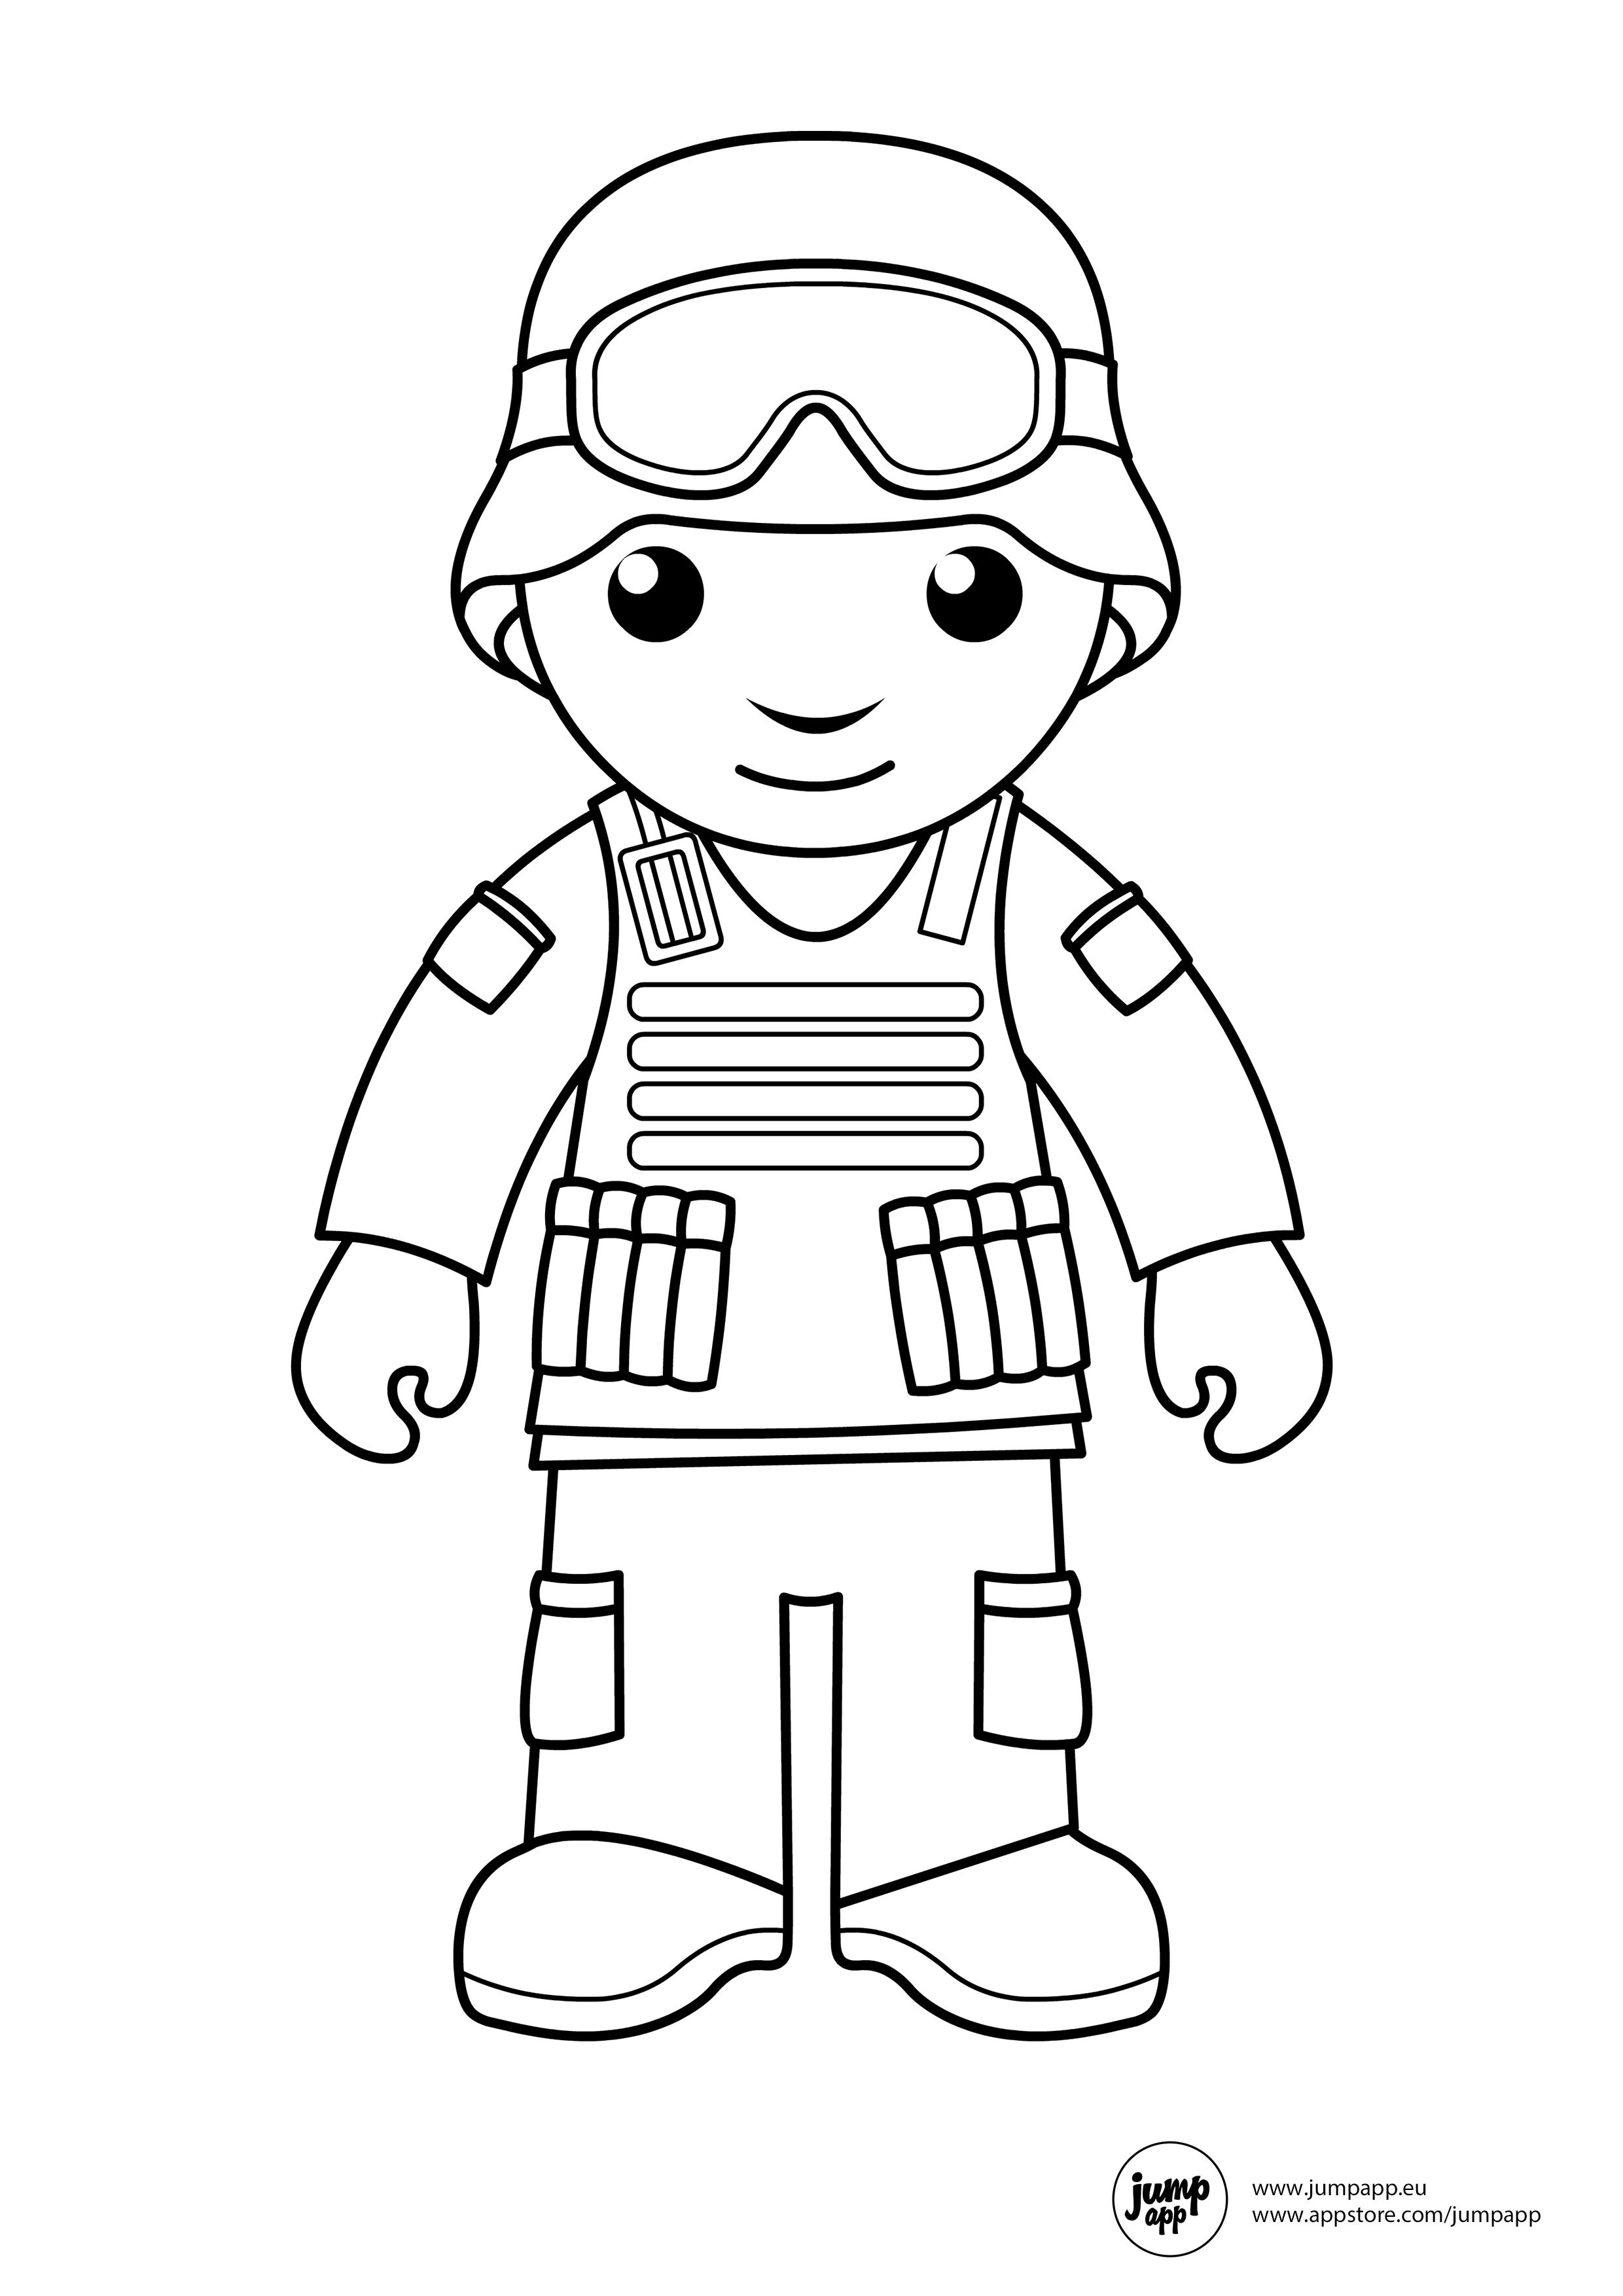 free printable army coloring pages free printable army coloring pages for kids cool2bkids coloring pages printable free army